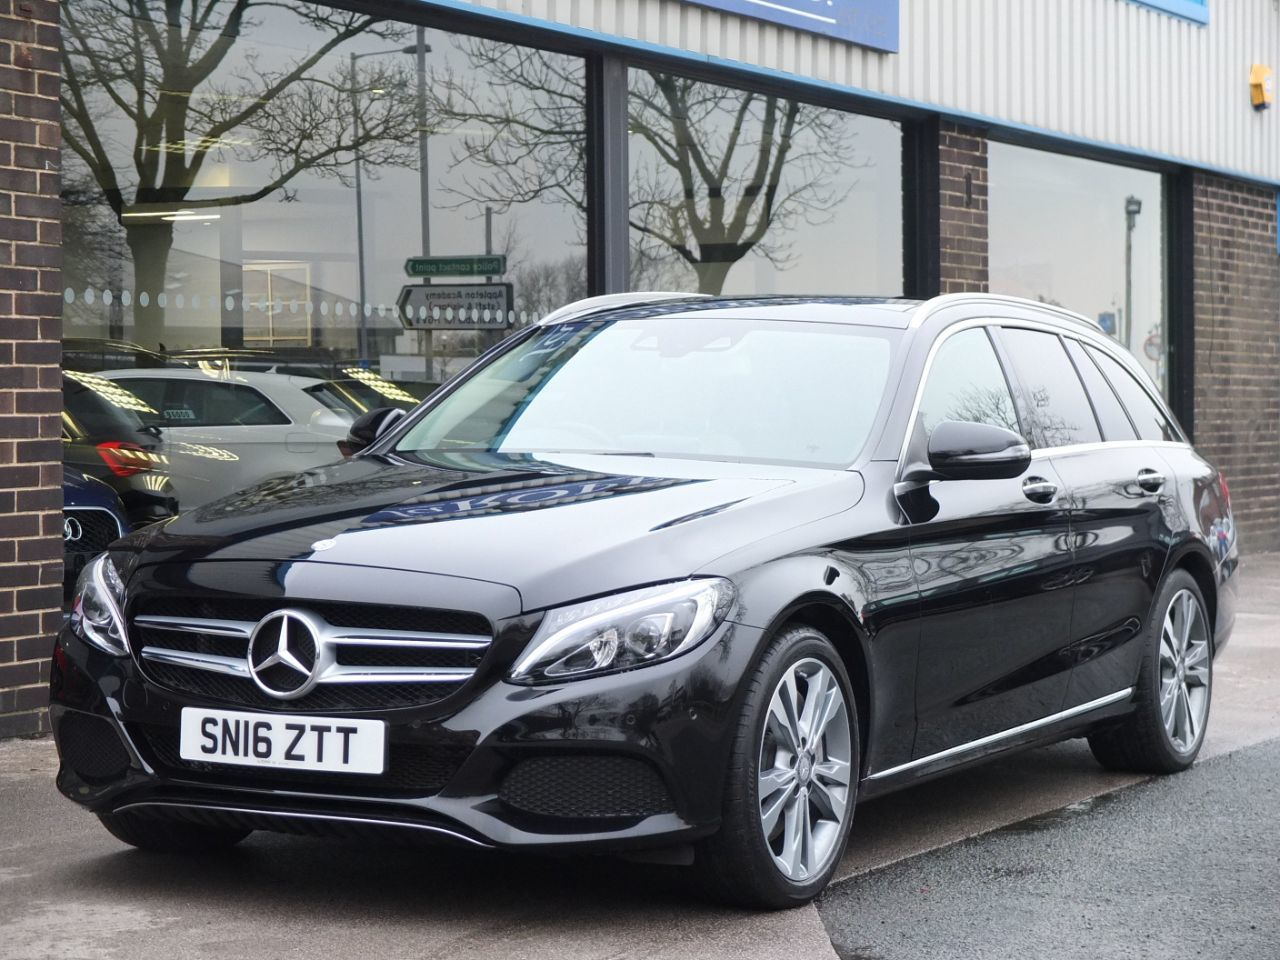 Mercedes-Benz C Class 2.0 Estate C350e Sport Premium Plus PHEV Auto Estate Petrol / Electric Hybrid Obsidian Black MetallicMercedes-Benz C Class 2.0 Estate C350e Sport Premium Plus PHEV Auto Estate Petrol / Electric Hybrid Obsidian Black Metallic at fa Roper Ltd Bradford